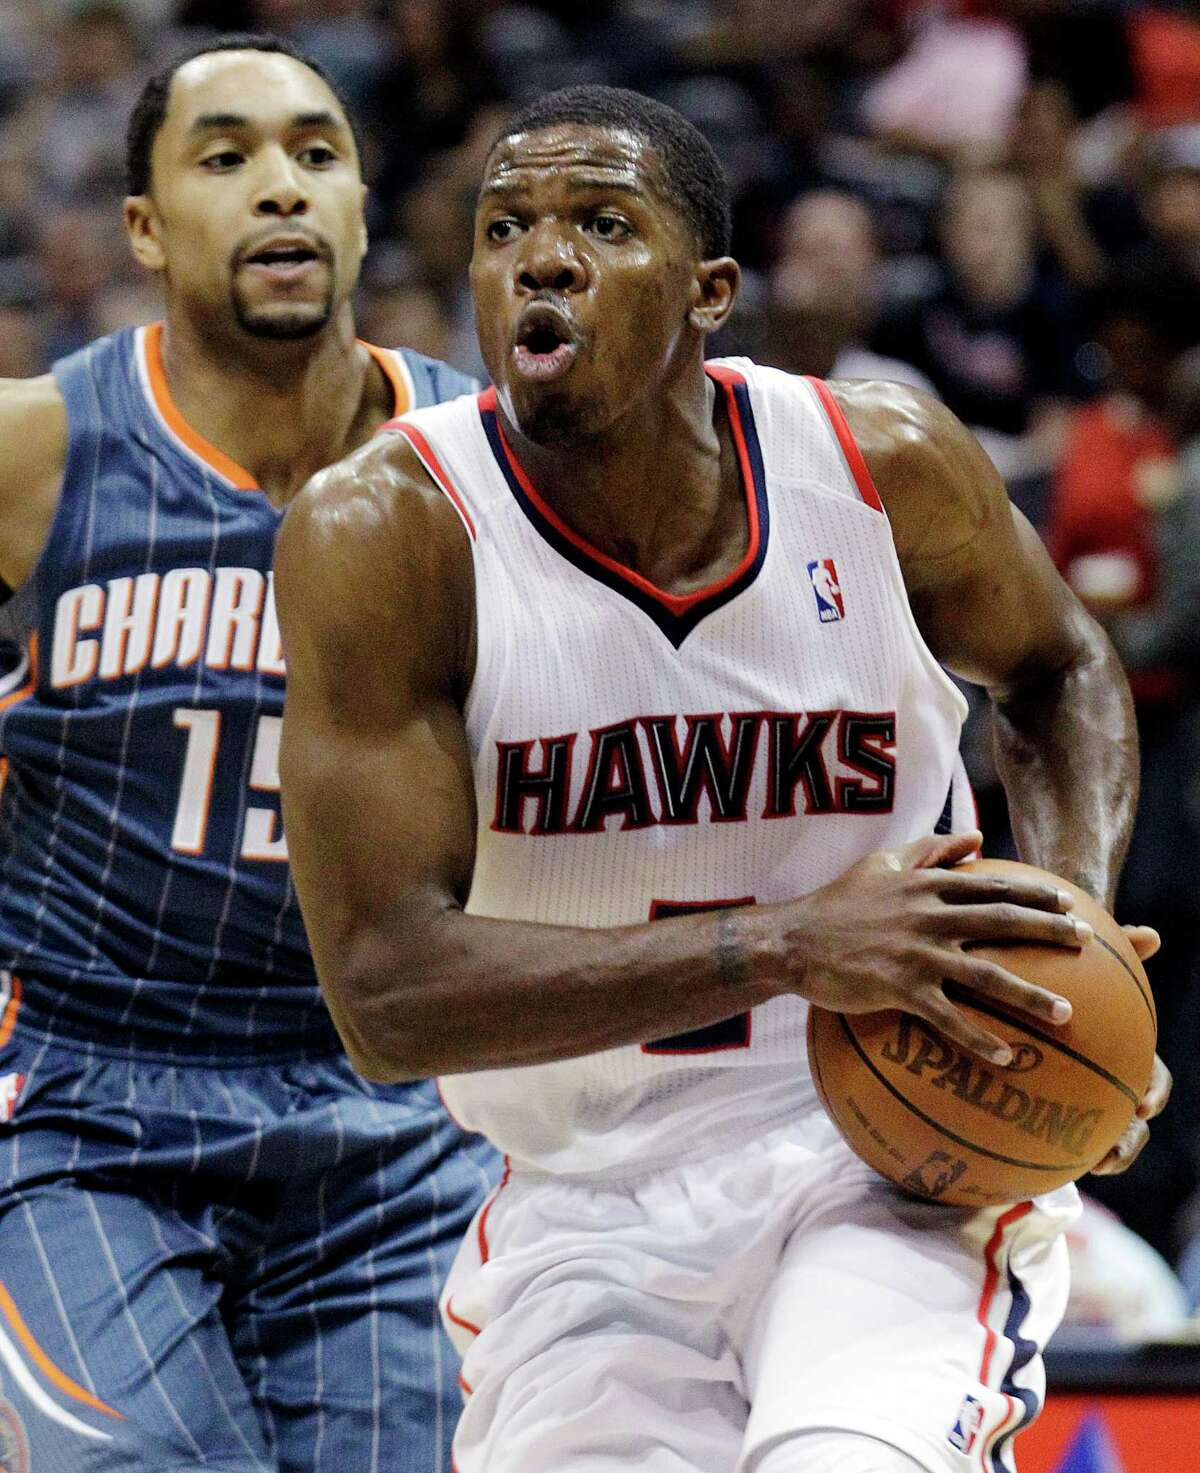 FILE - In this April 4, 2012, file photo, Atlanta Hawks' Joe Johnson, right, drives against Charlotte Bobcats' Gerald Henderson,in an NBA basketball game in Atlanta. Multiple media outlets, starting with ESPN and all citing anonymous sources, are reporting the Hawks and New Jersey Nets have agreed to a trade that would send Johnson from Atlanta to Brooklyn, Monday, July 2.